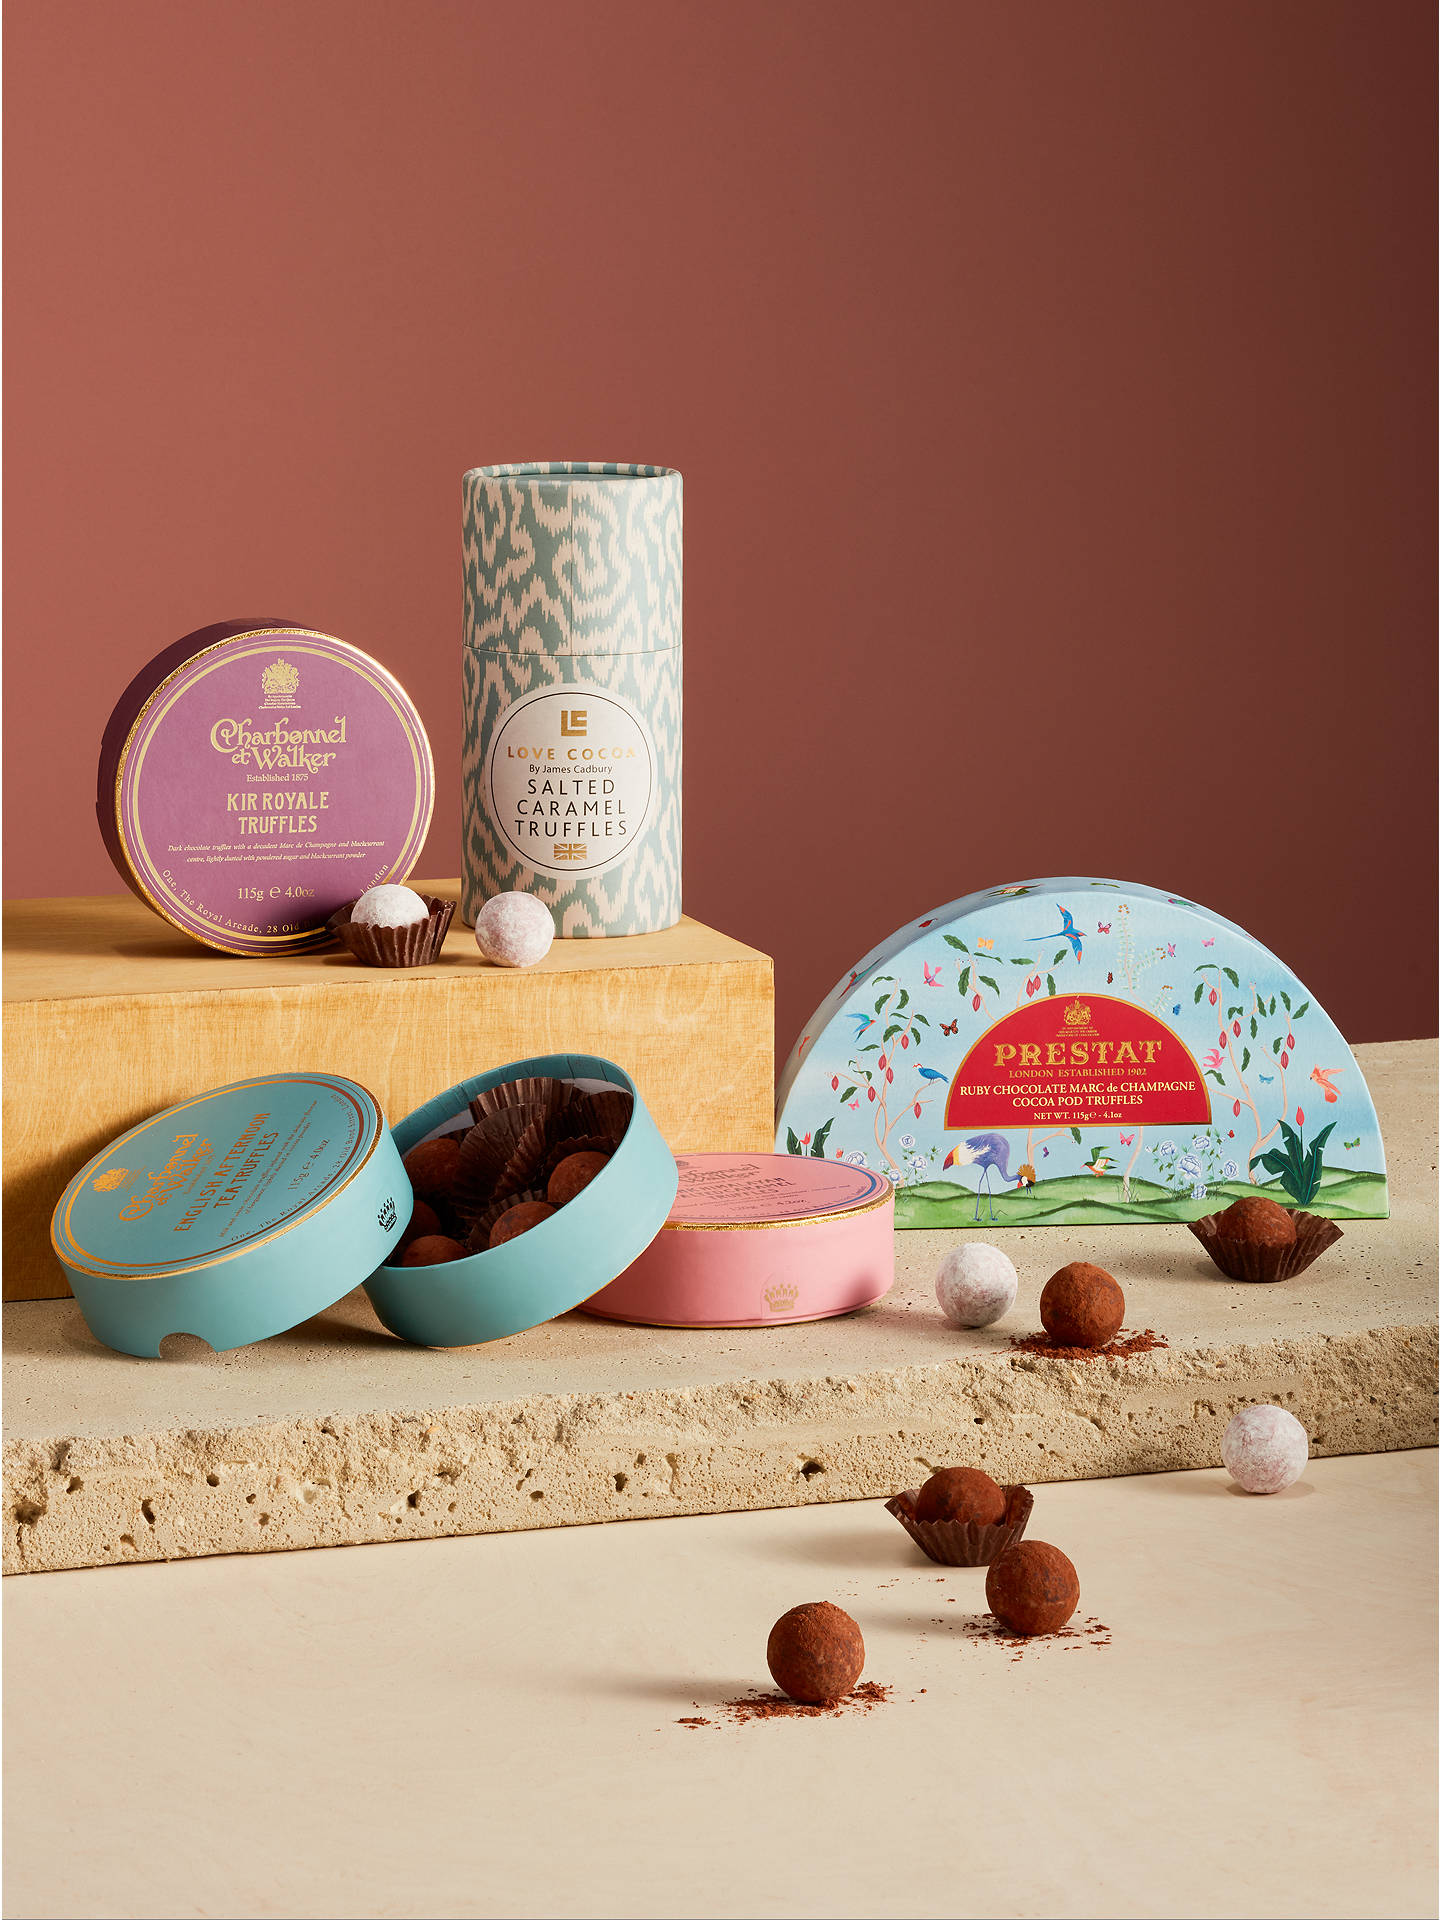 Buy Prestat Ruby Marc De Champagne Truffles, 115g Online at johnlewis.com